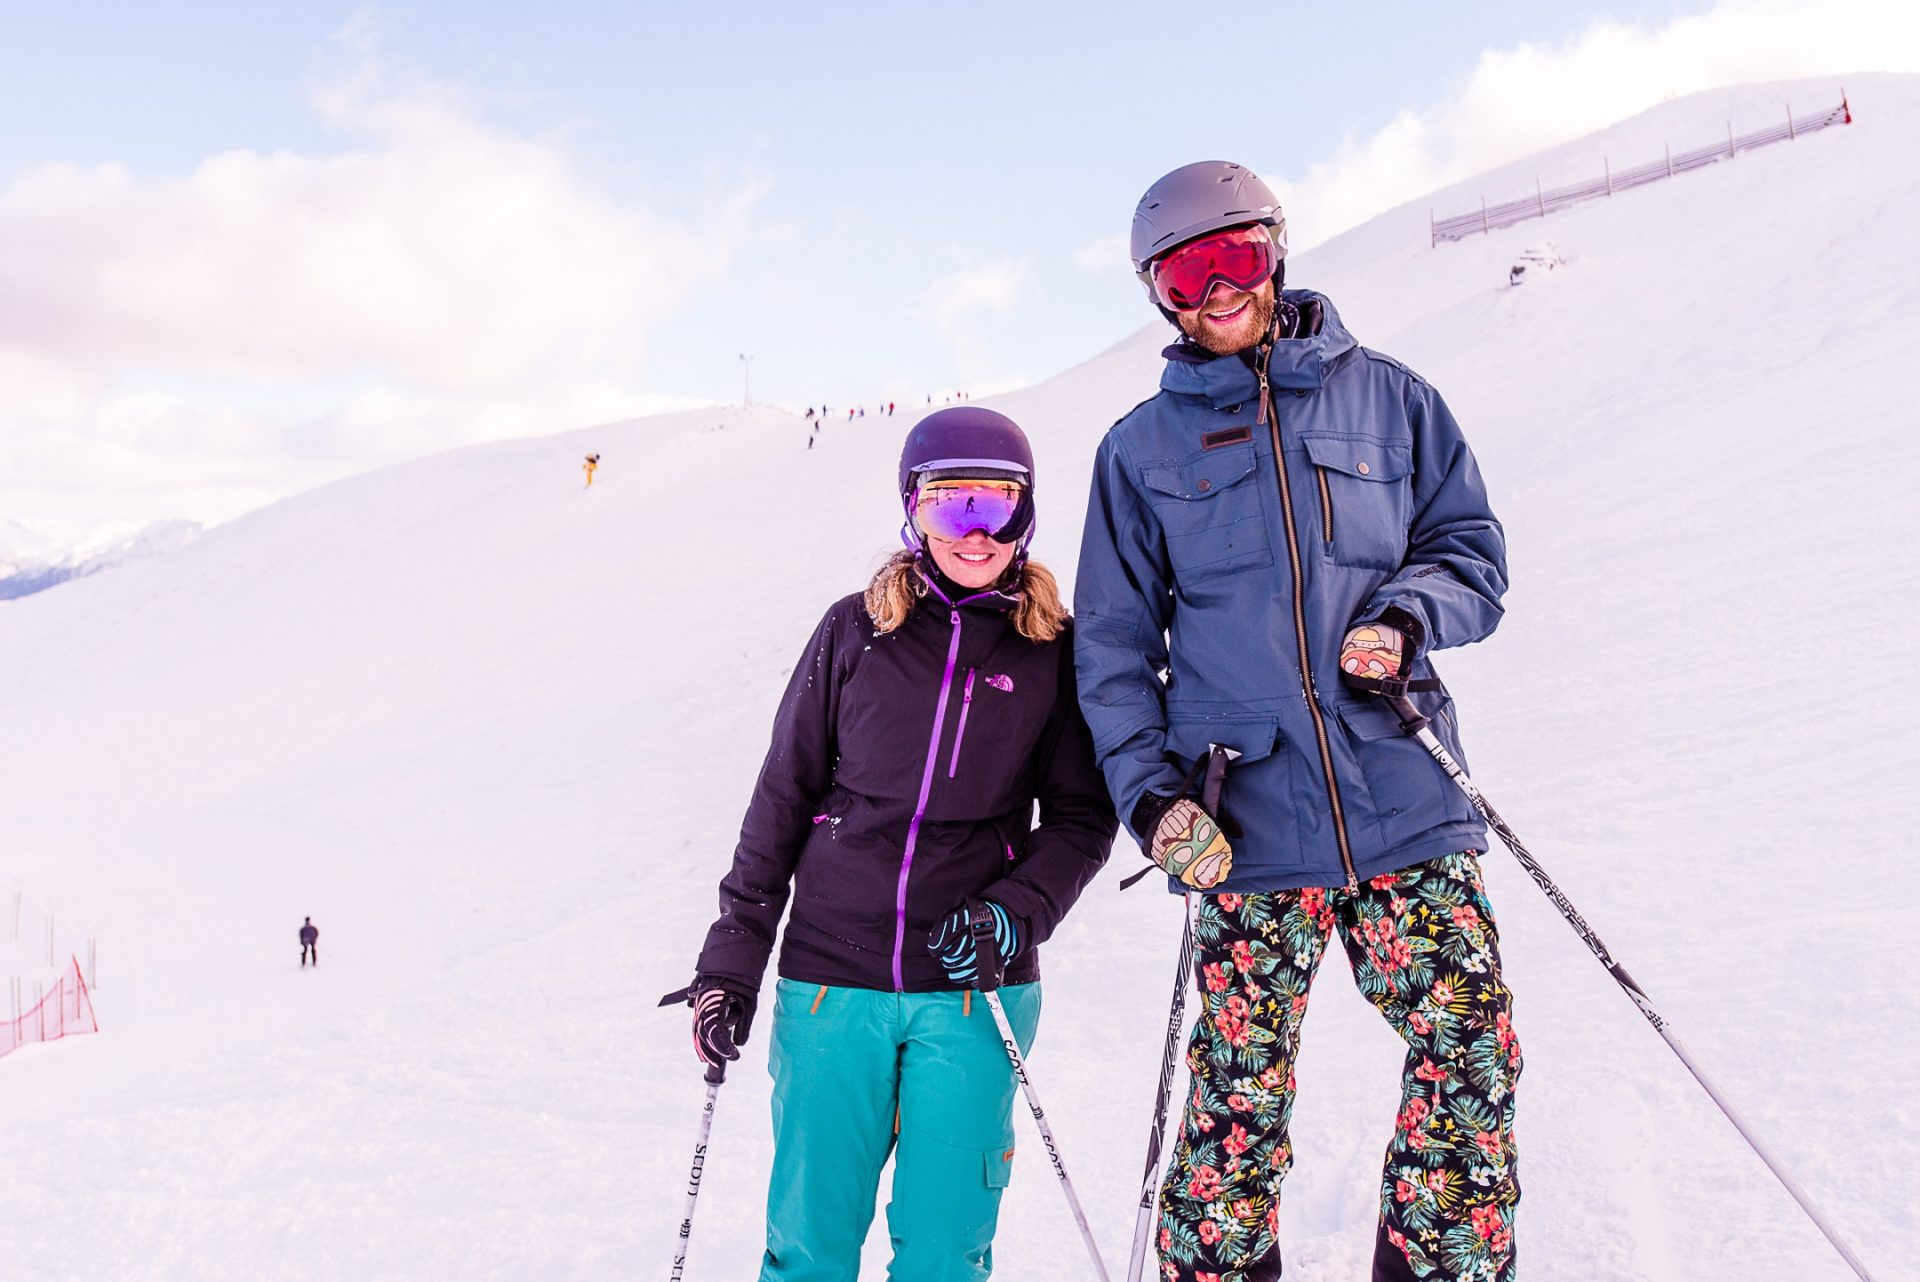 Ski instructors Sarah Gregory and Michael Carroll at Coronet Peak